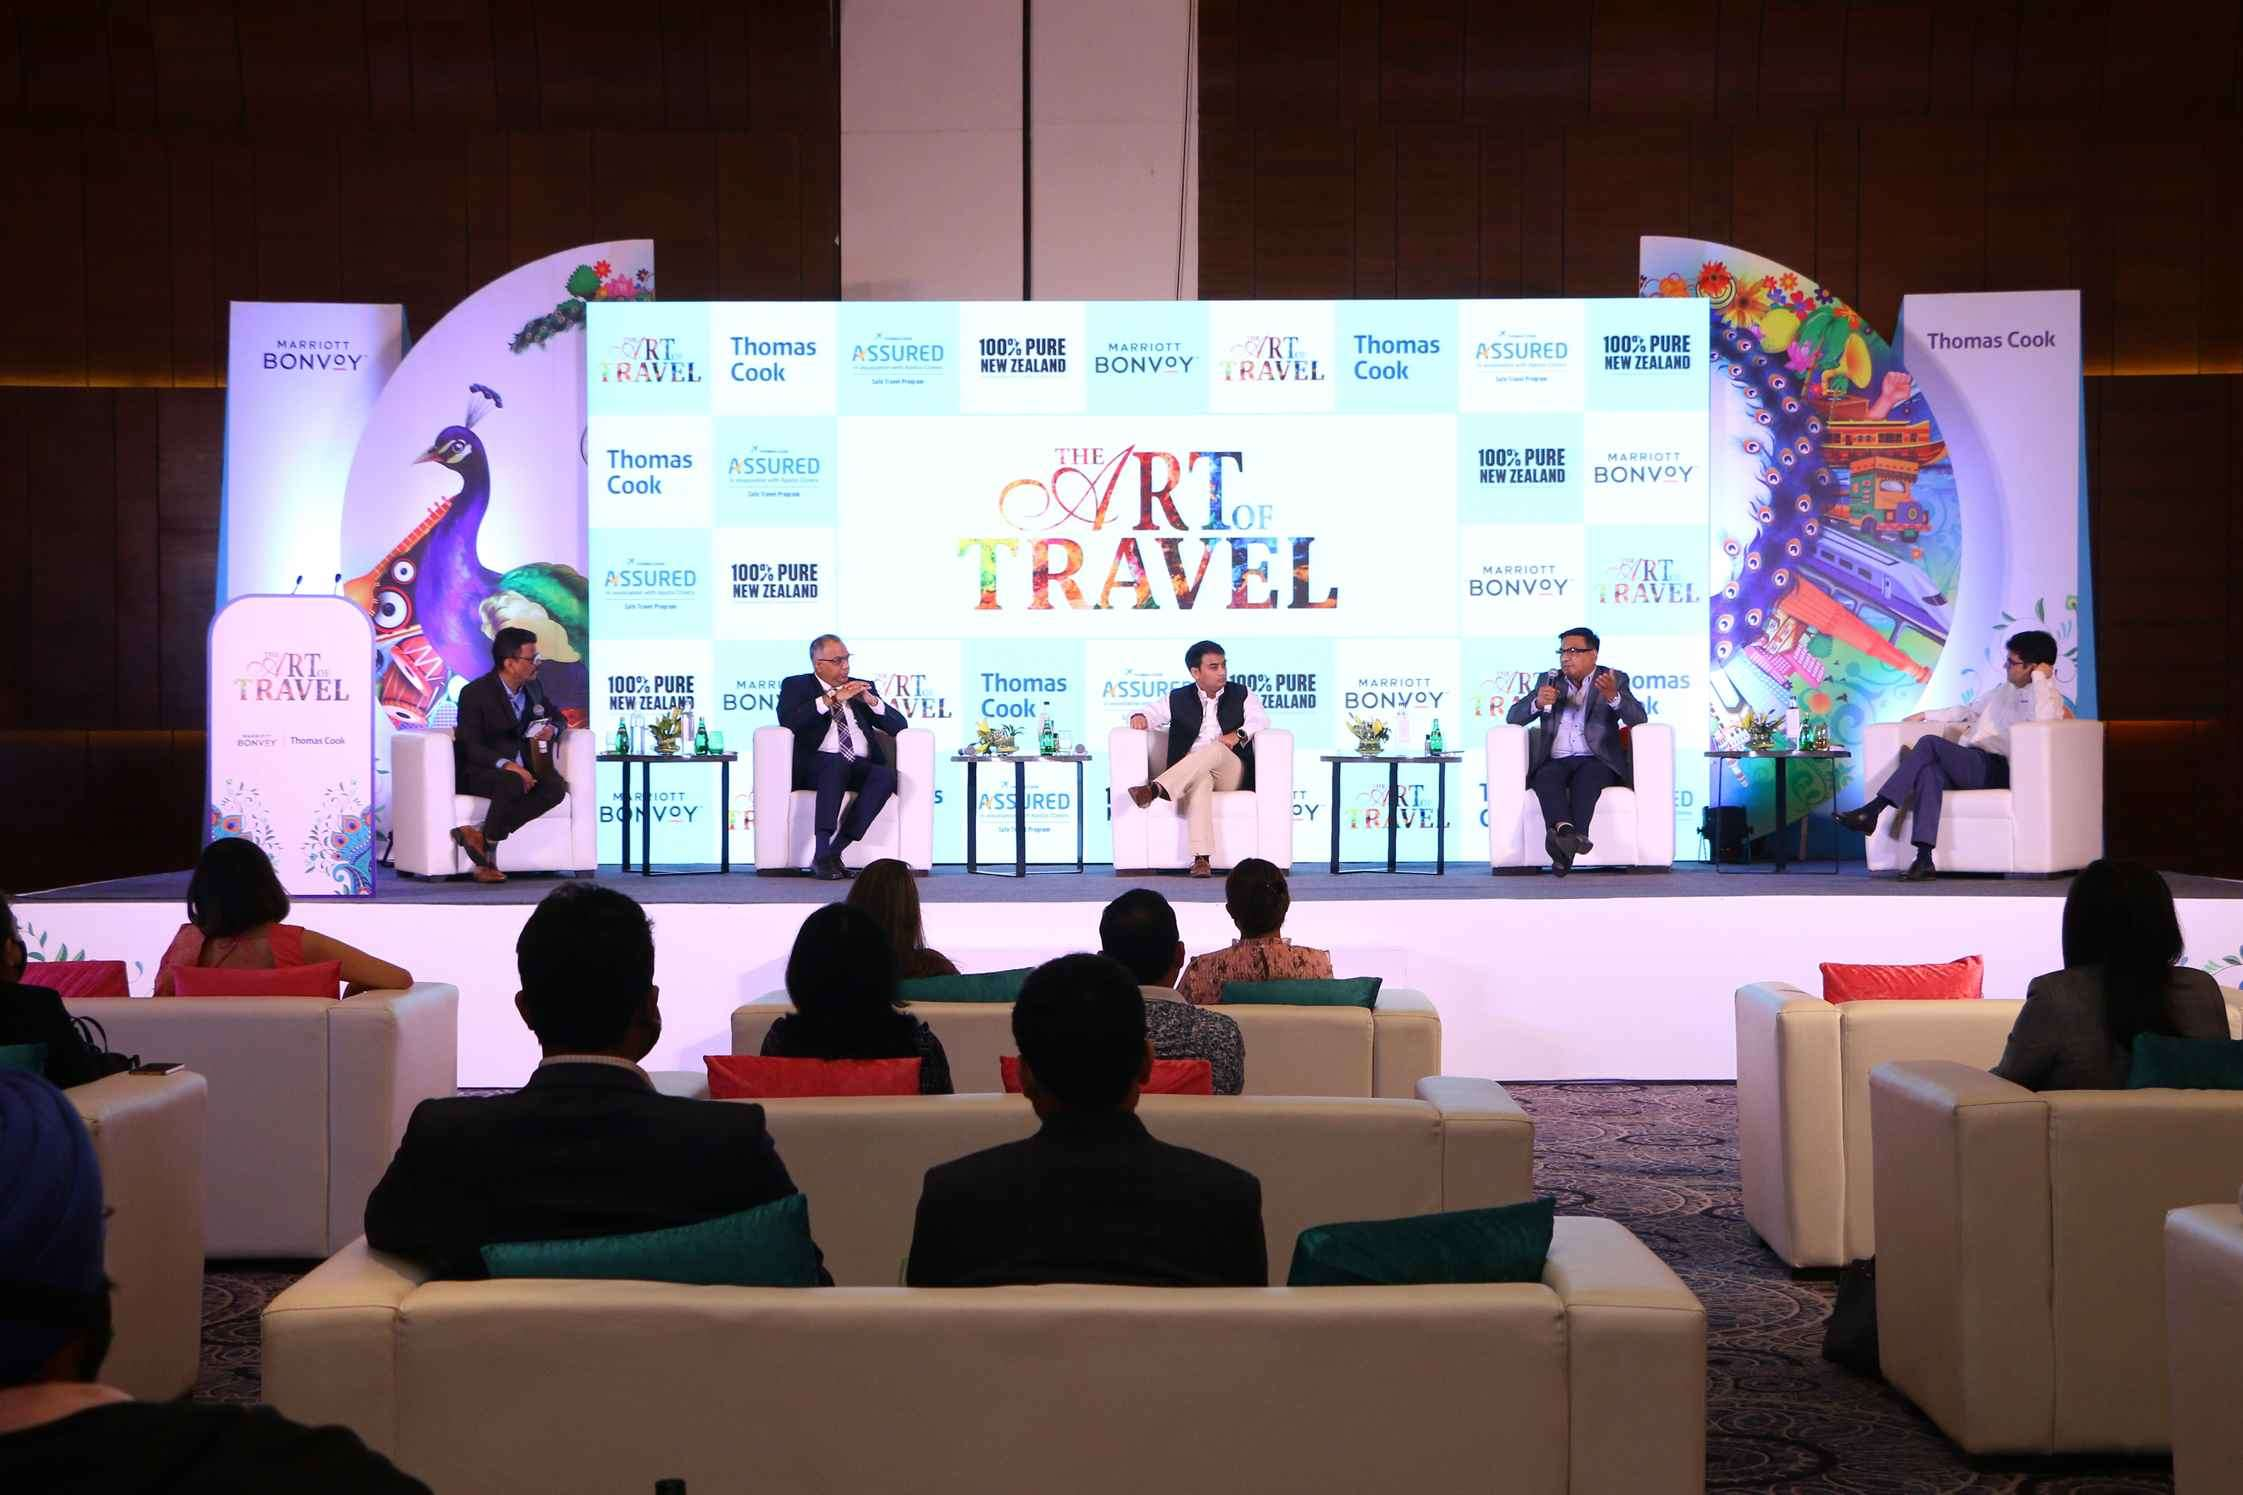 Plan events for smaller batches in a series rather than one big convention: Rajeev Kale